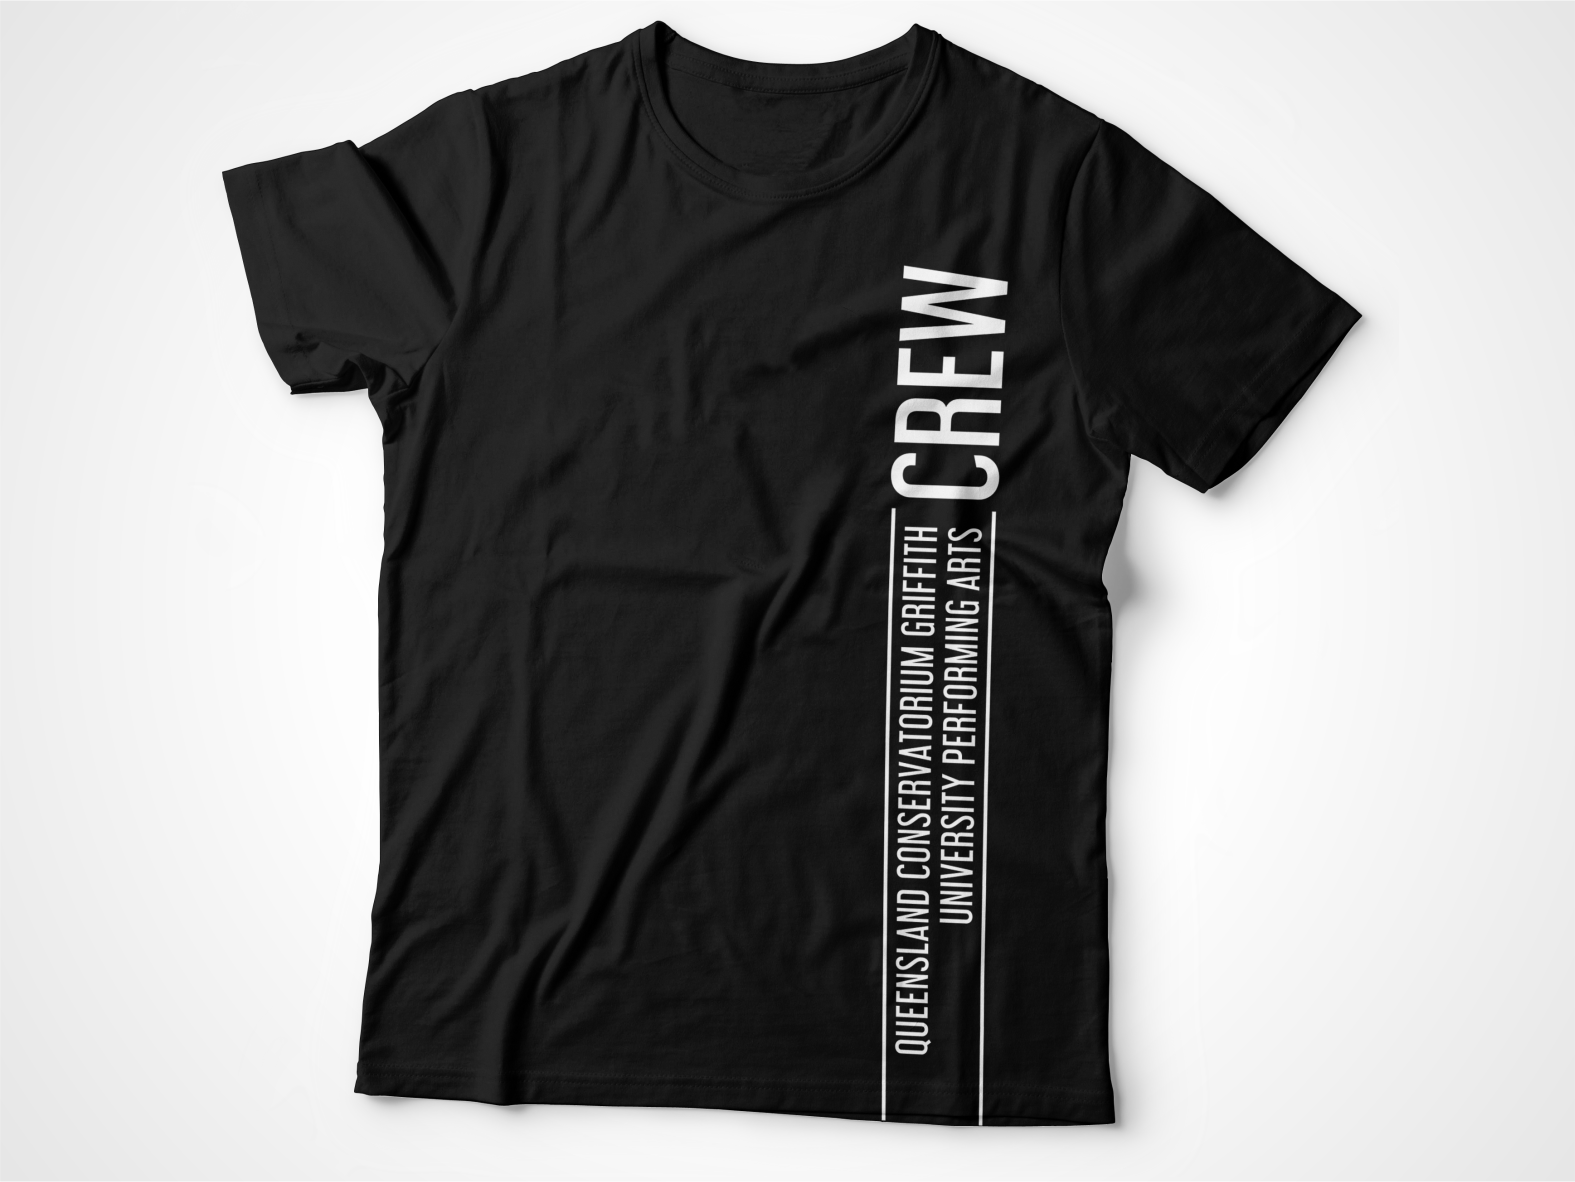 Winning design #46 by arni_admim, T-shirt Design for Backstage Crew Shirt  Contest - Backstage Crew PNG